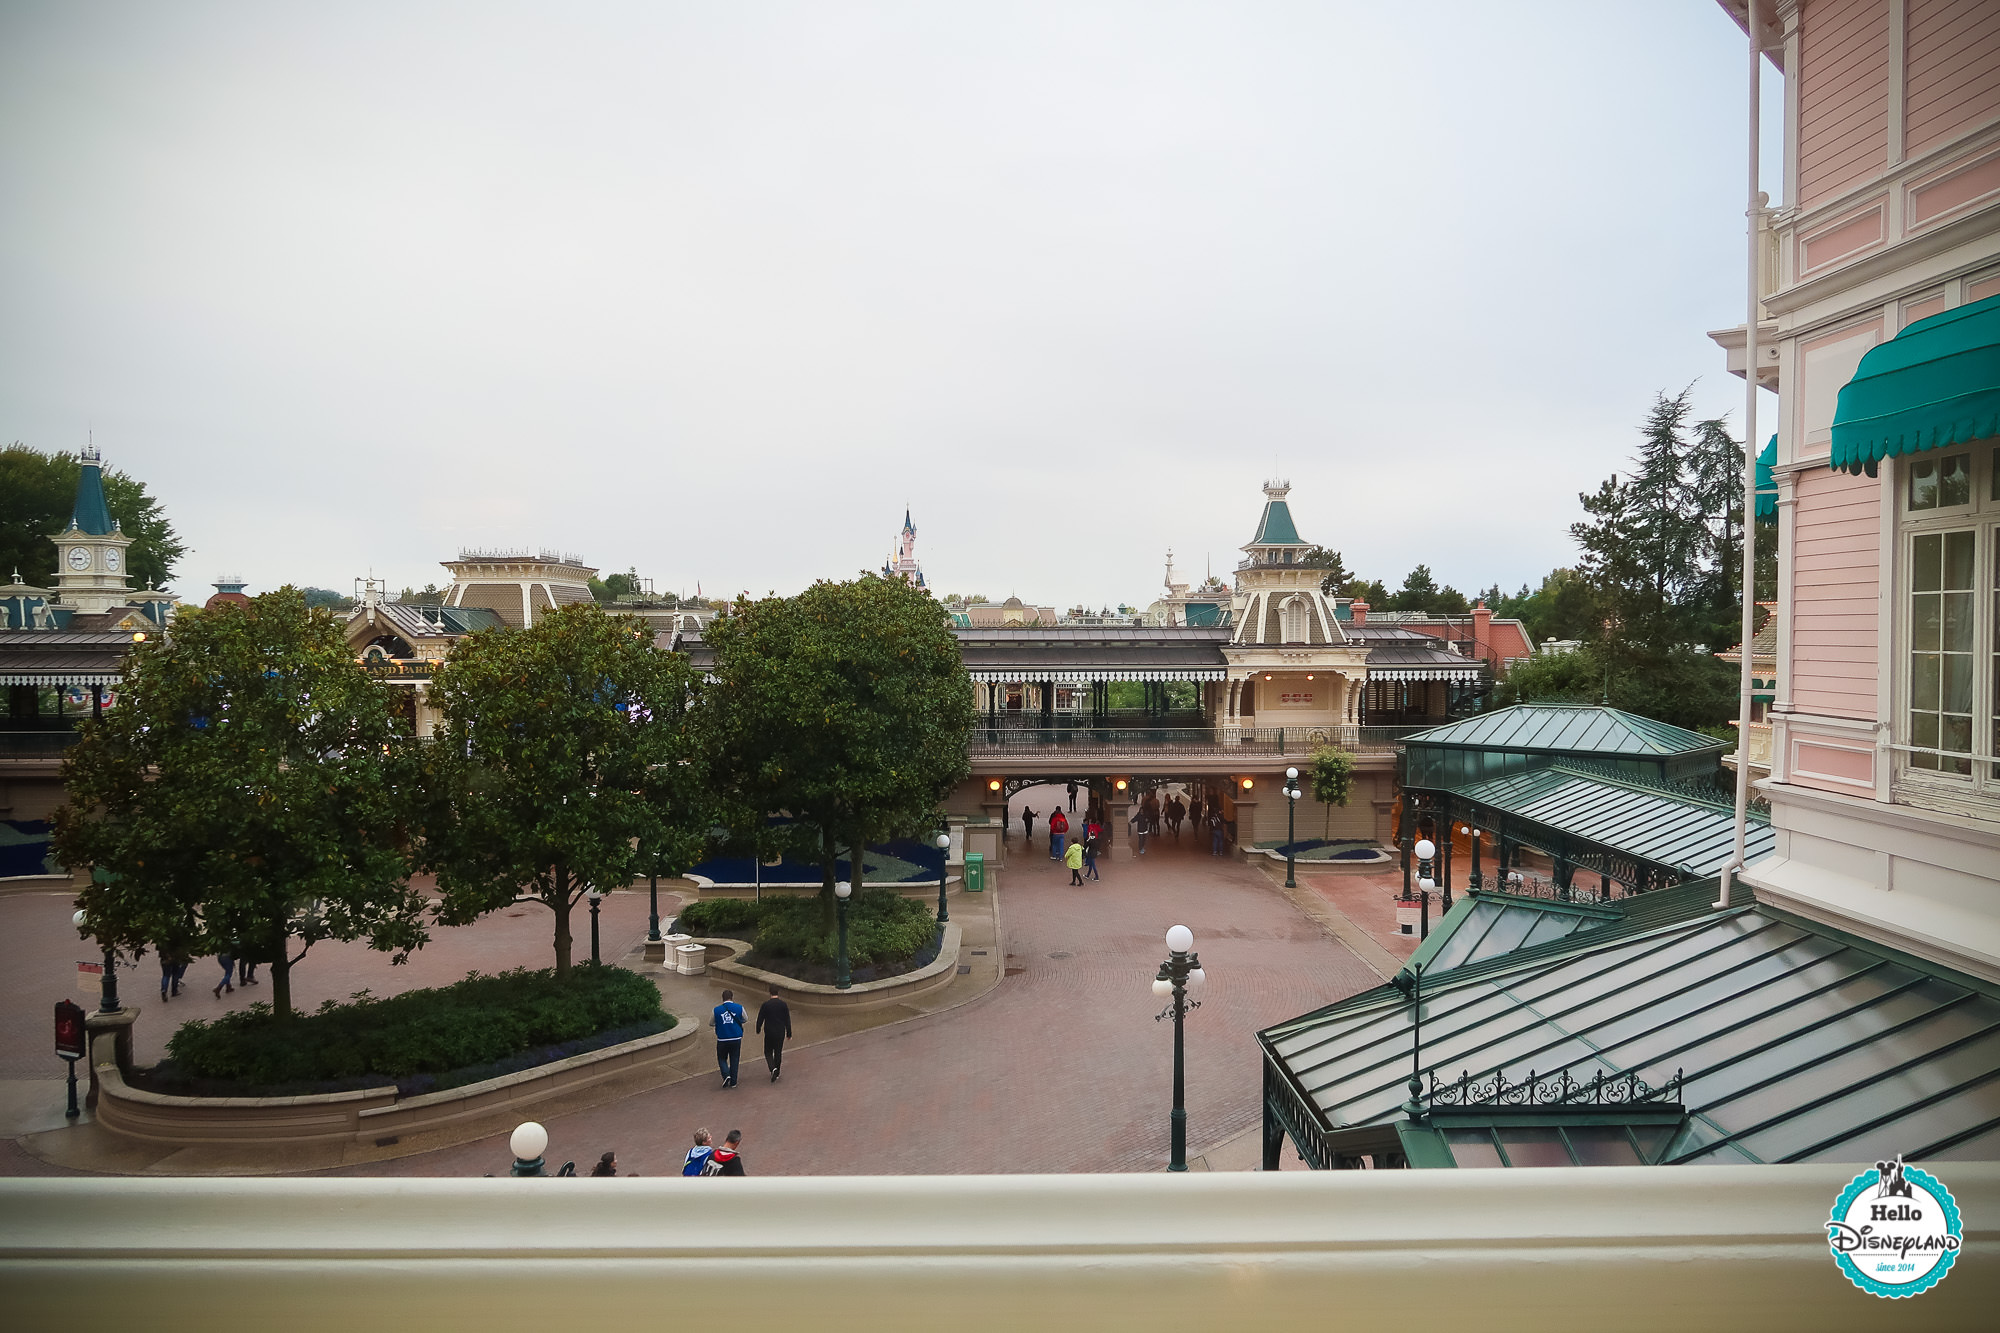 California Grill - Disneyland Paris